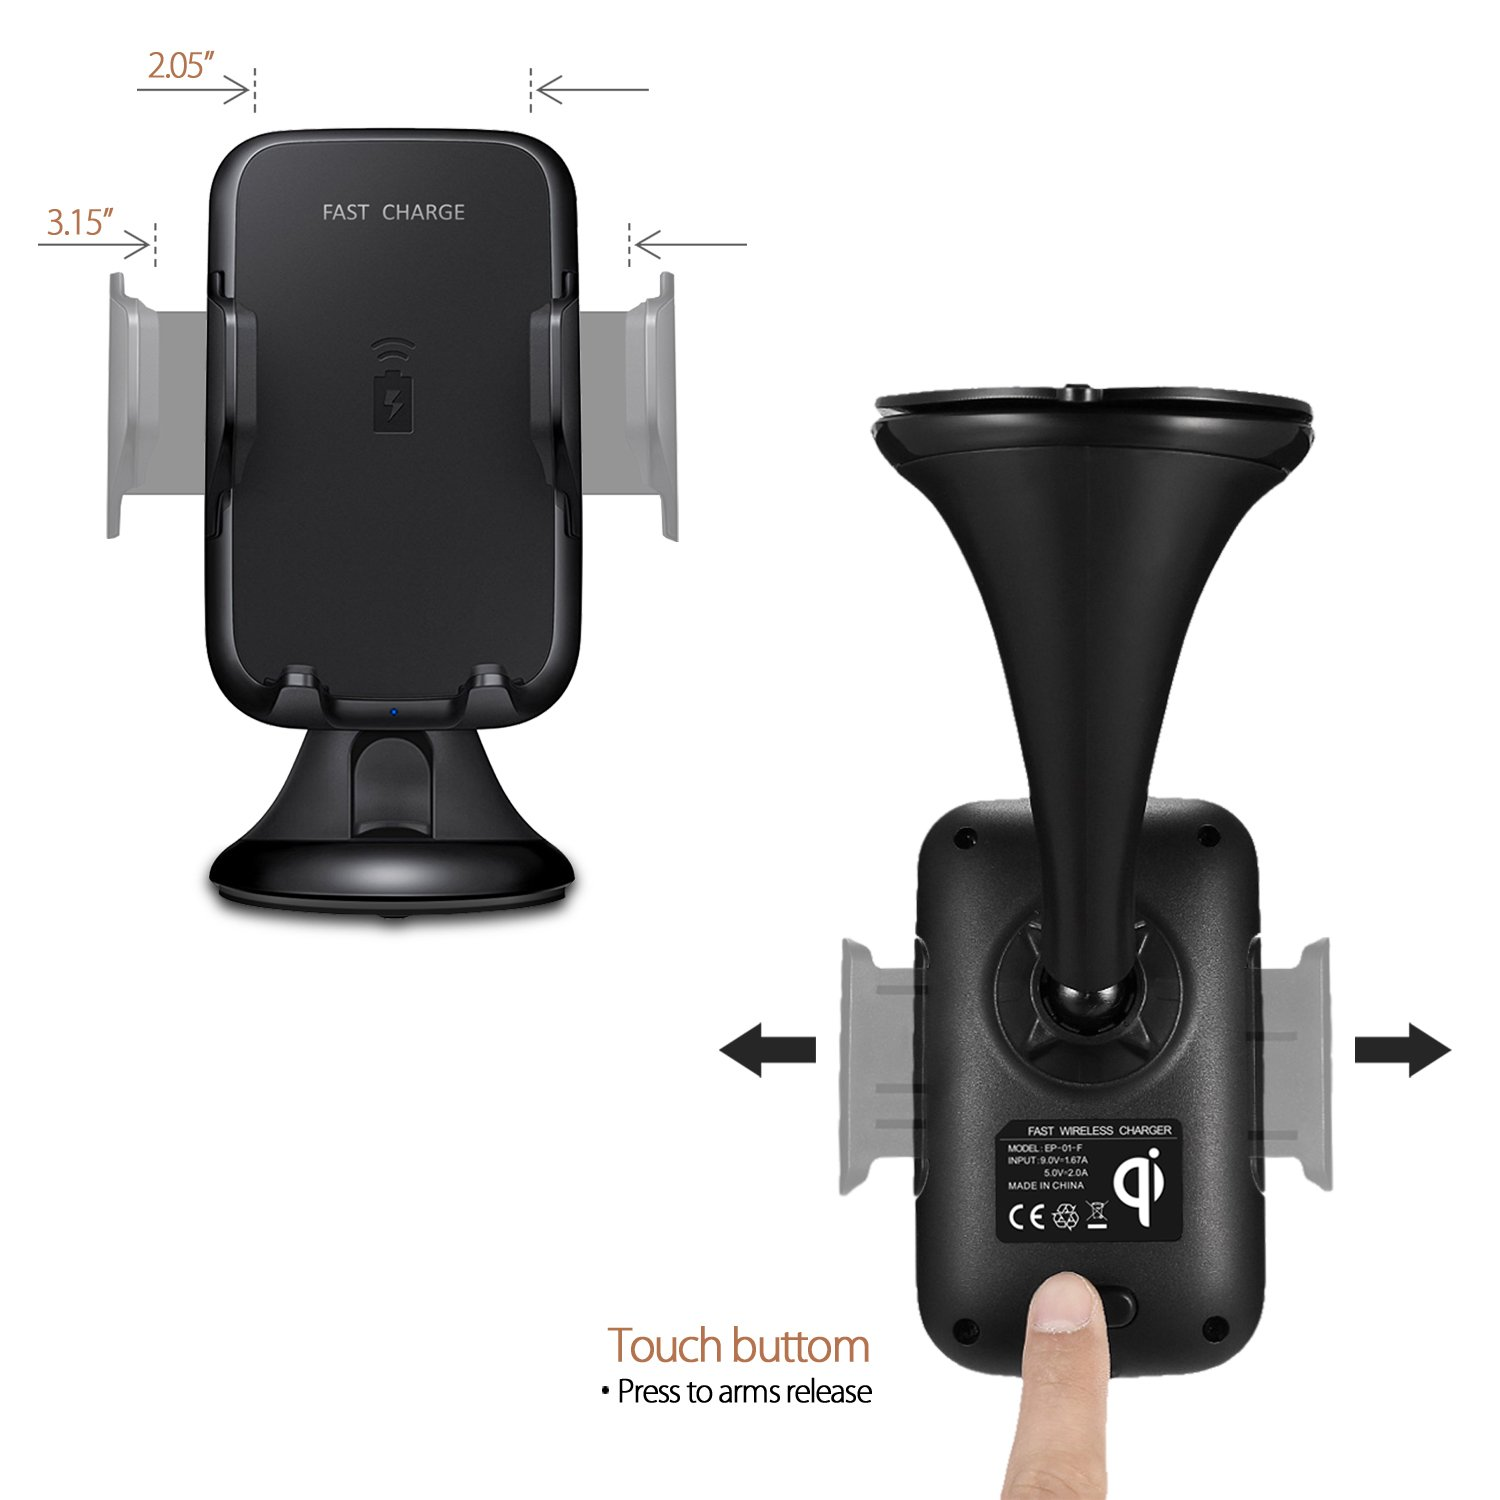 10.8W Wireless Charger Vehicle Dock S7 Edge MF-CC-06-pack 8//8 Plus Samsung Galaxy Note 8 S8 Plus Qi Wireless Charging Car Mount Compatible iPhone X mobfun Fast Car Wireless Charging Mount Car Charger